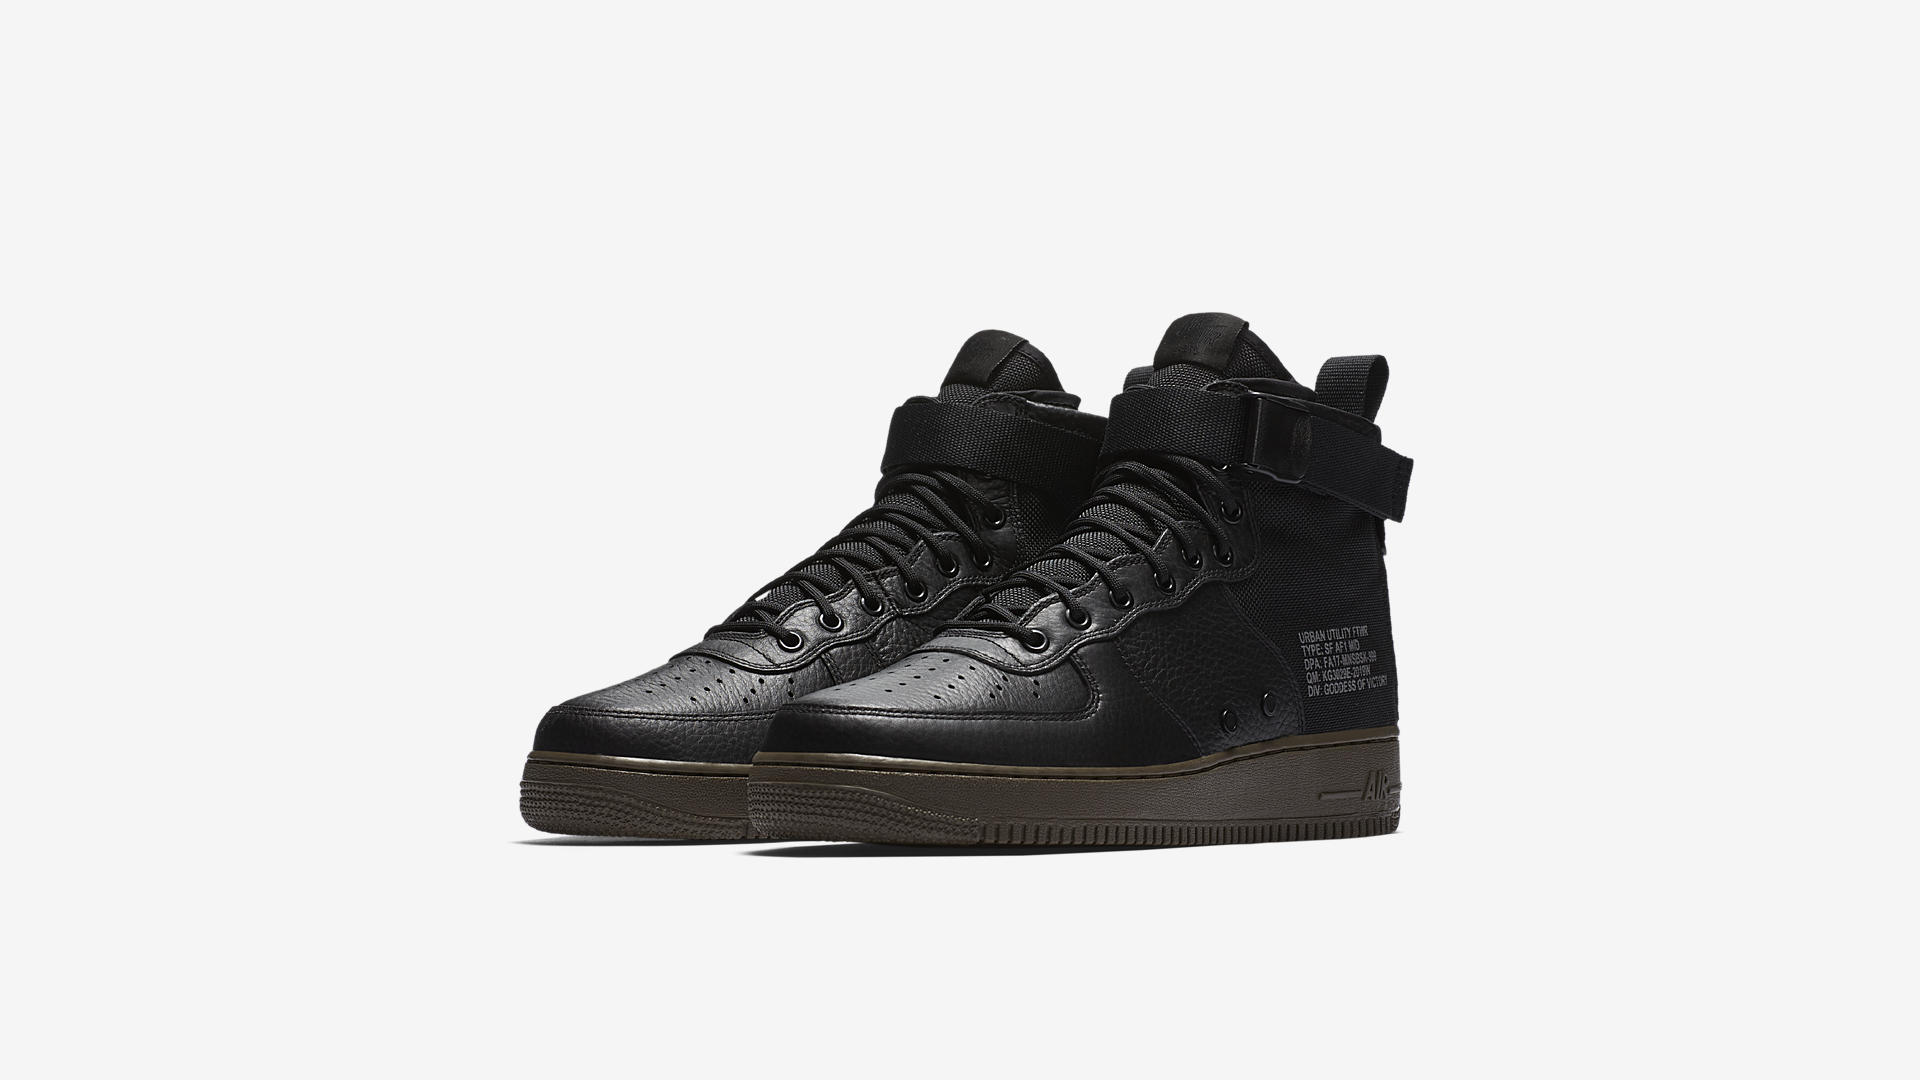 917753 002 Nike SF Air Force 1 Mid Black Dark Hazel 1